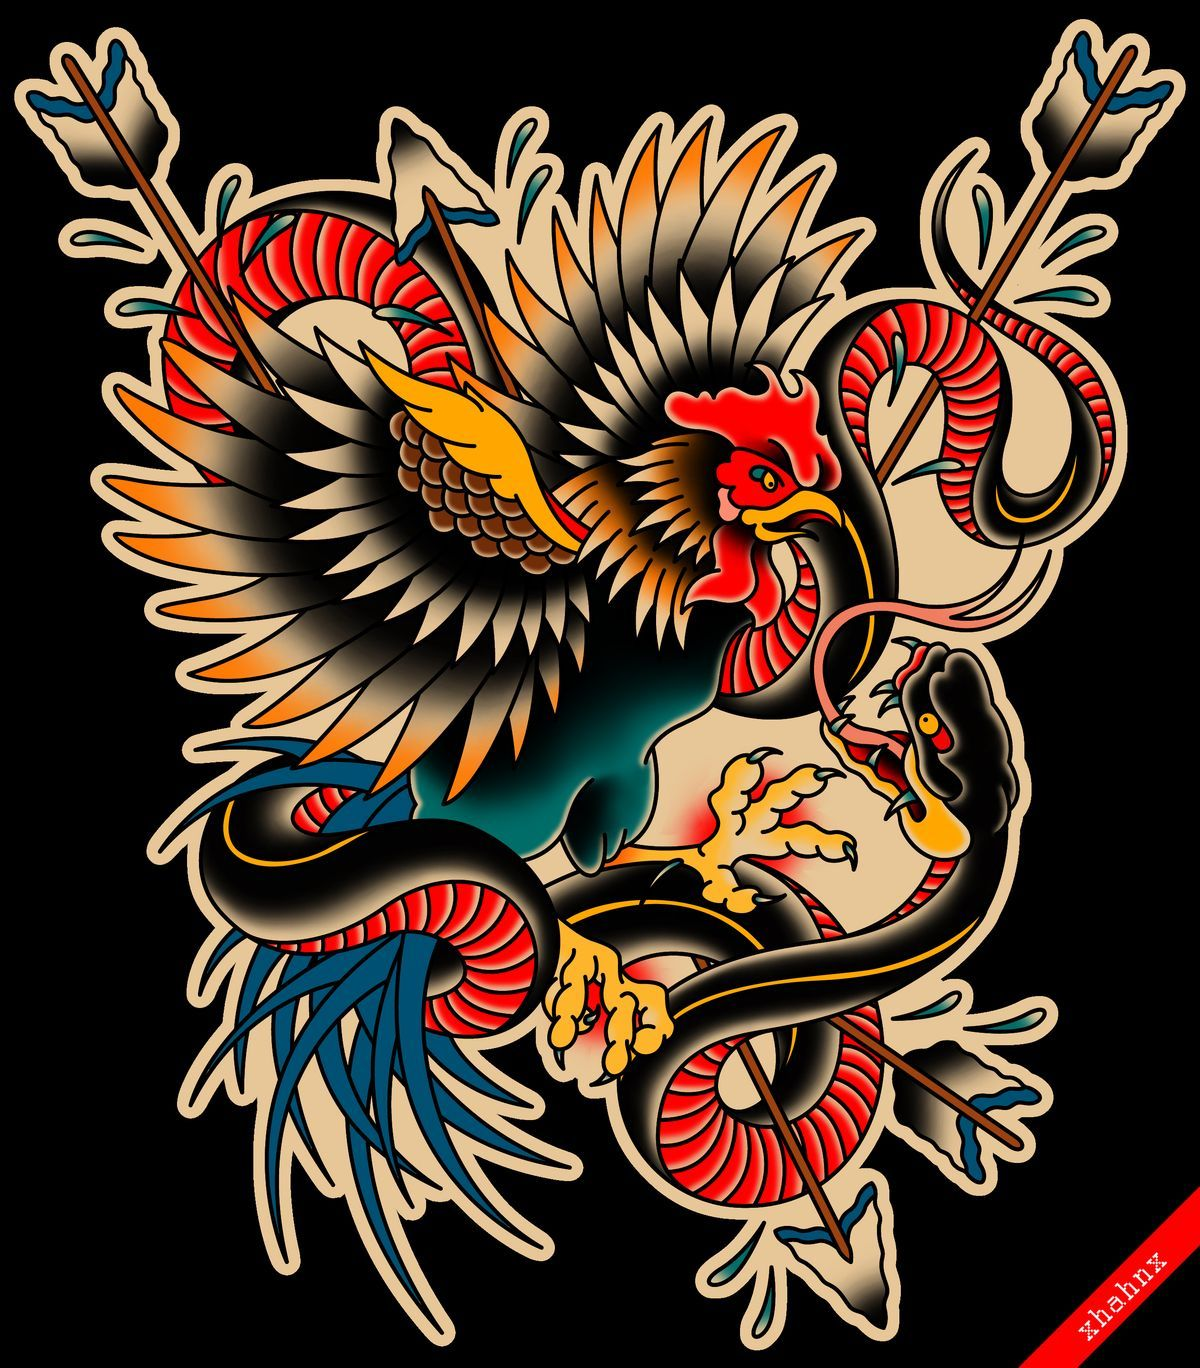 Traditional rooster and snake | Flash⚡️ | Pinterest | More ...